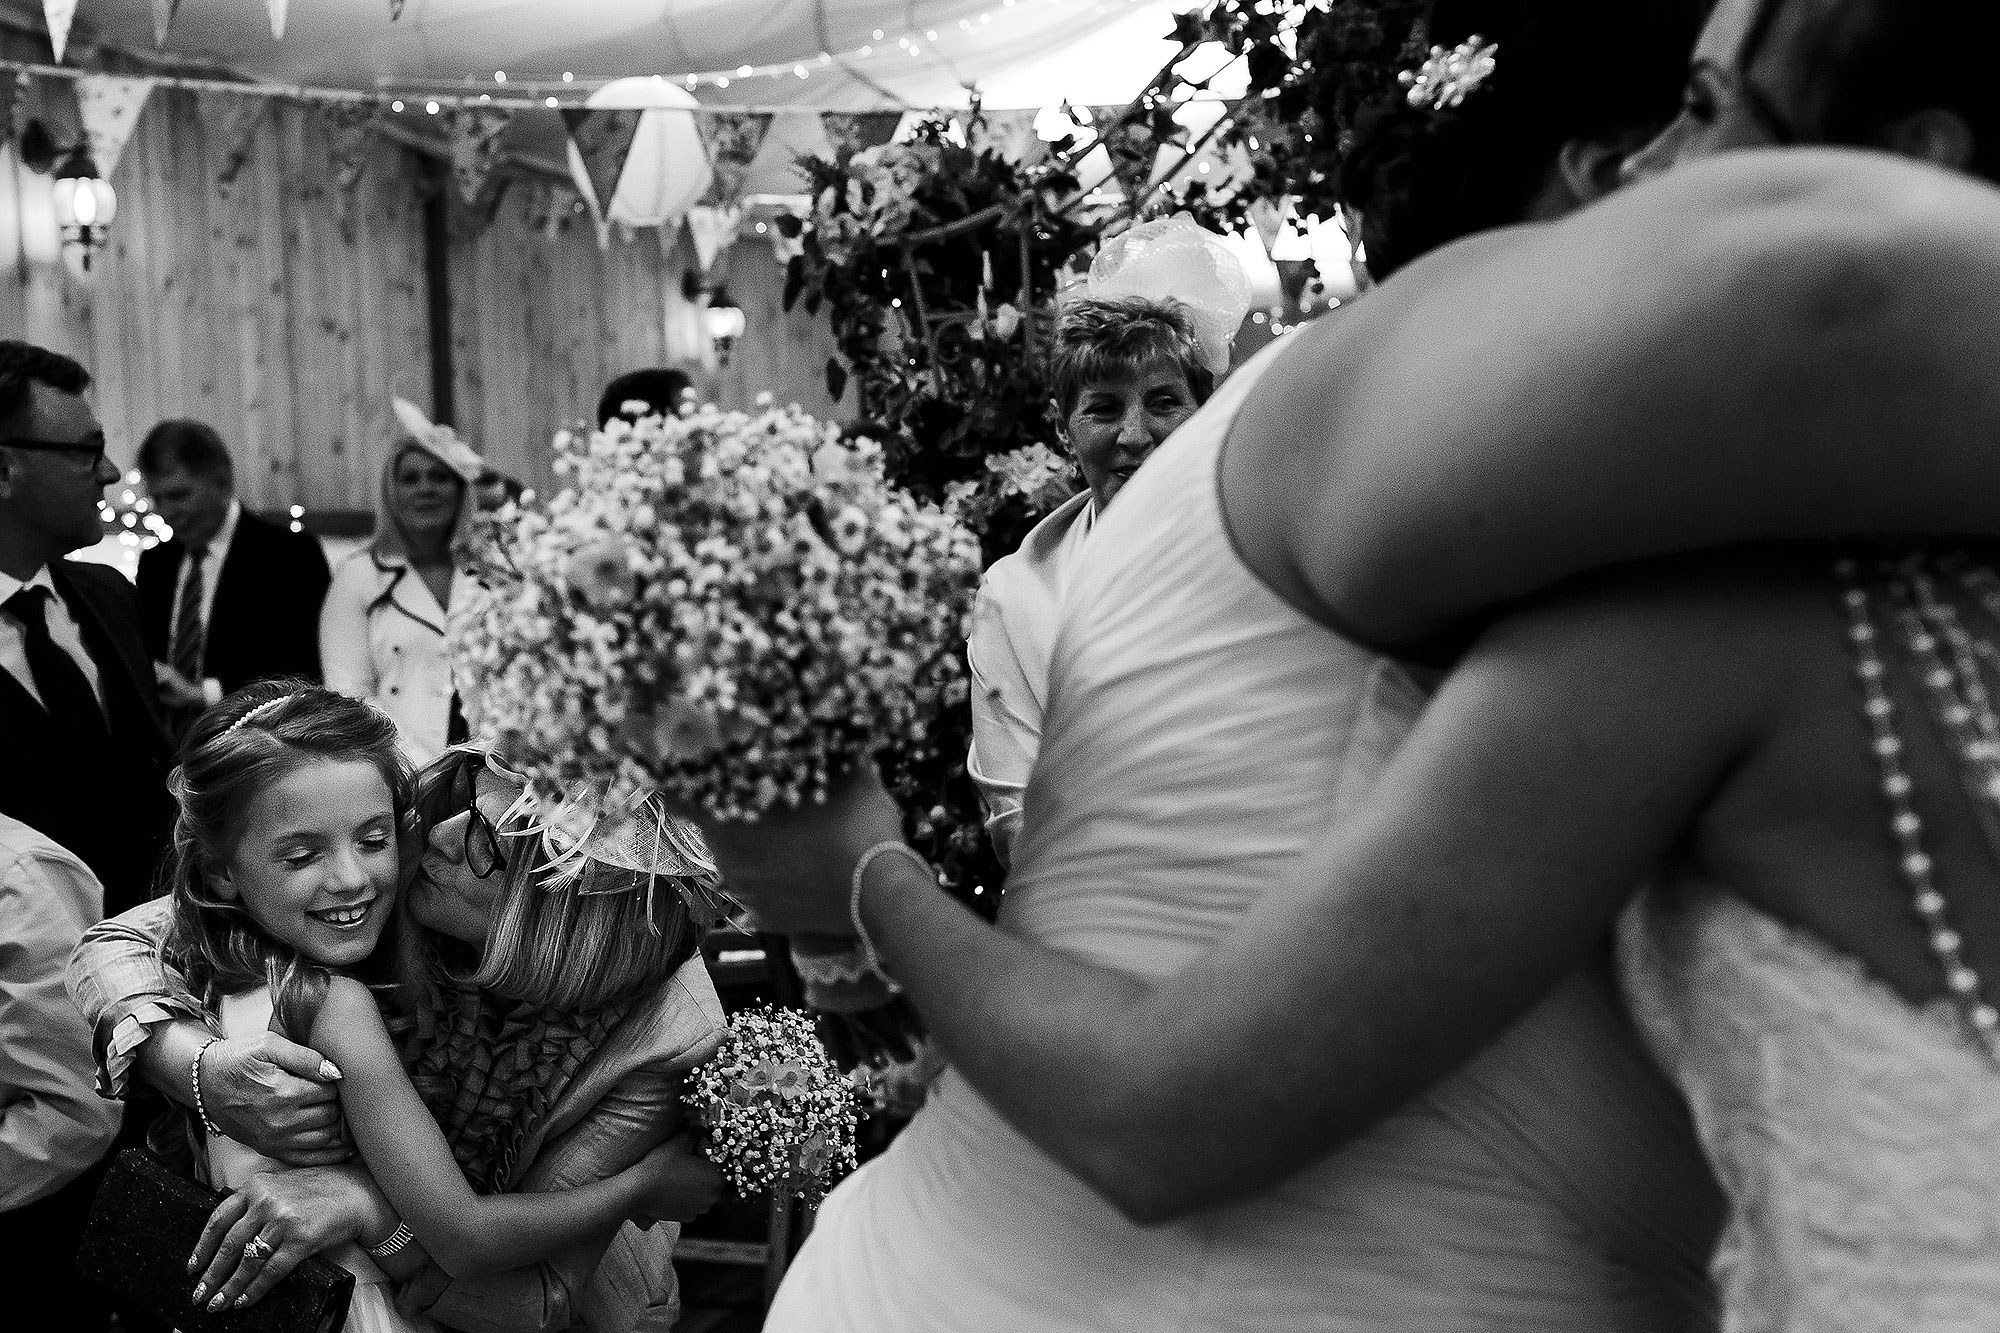 Wedding guests hugging after wedding ceremony | Summer wedding at Wellbeing Farm - Toni Darcy Photography